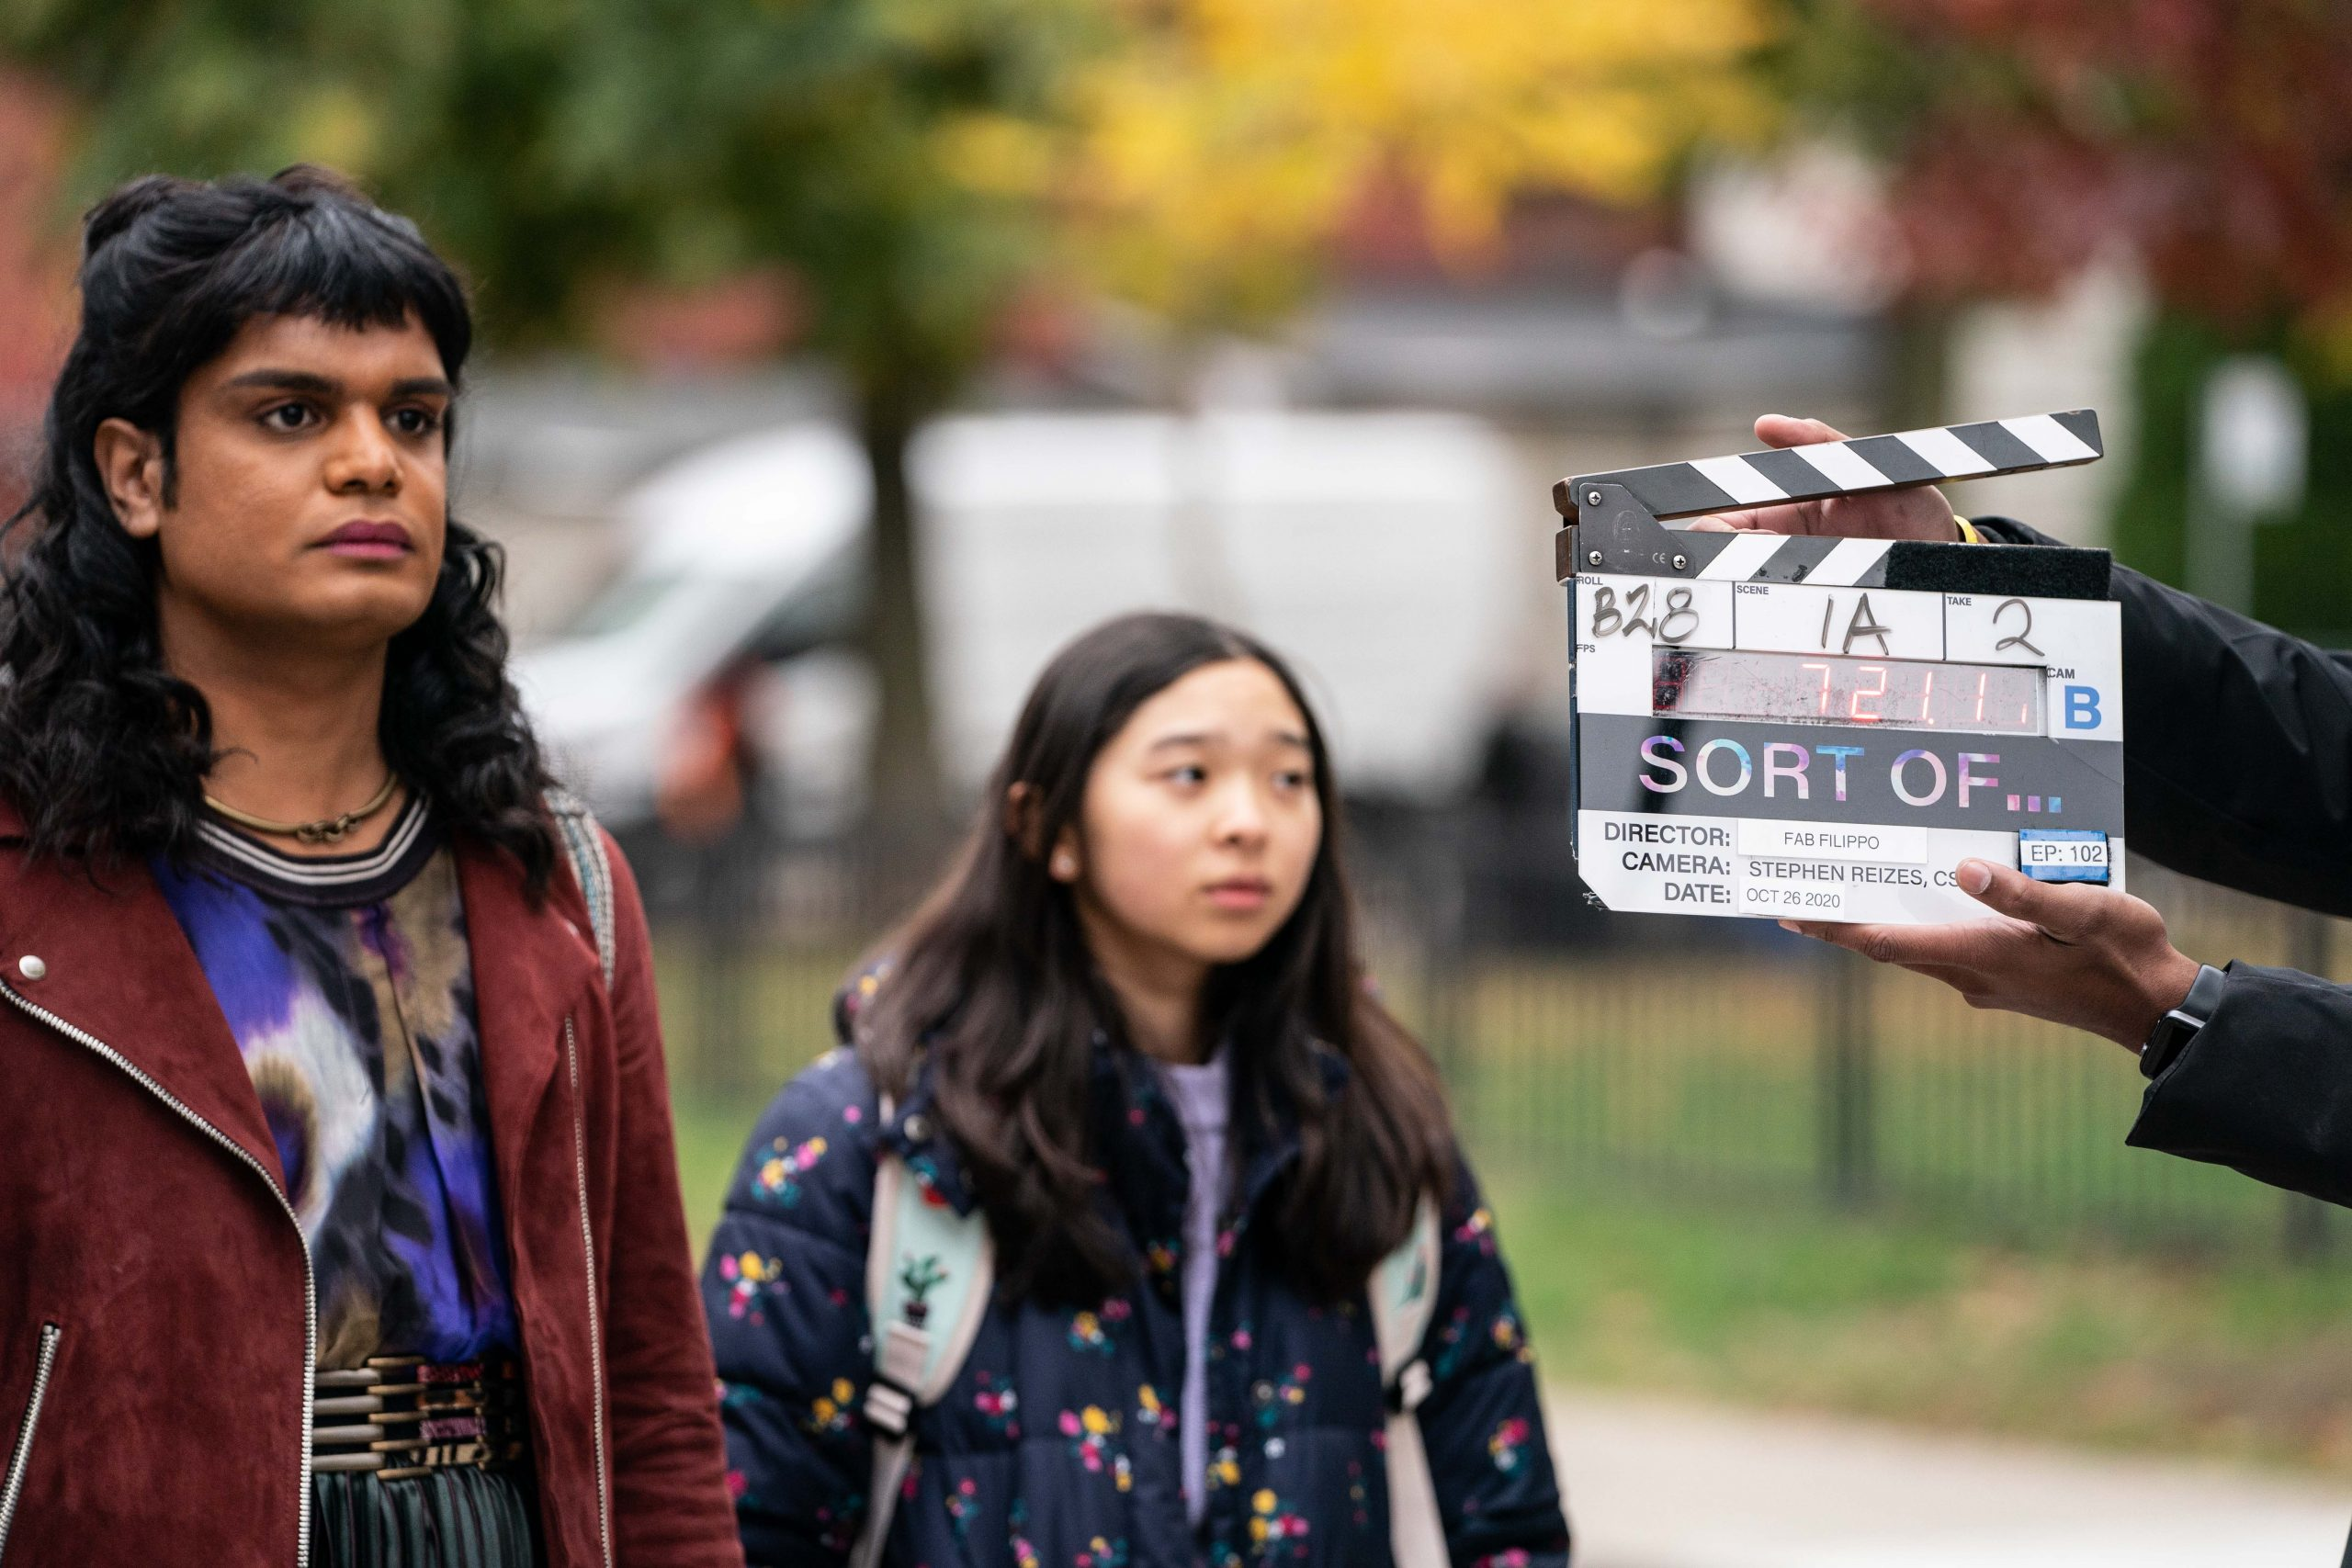 Abacus Media Rights secures international distribution rights to CBC original comedy series 'Sort Of'